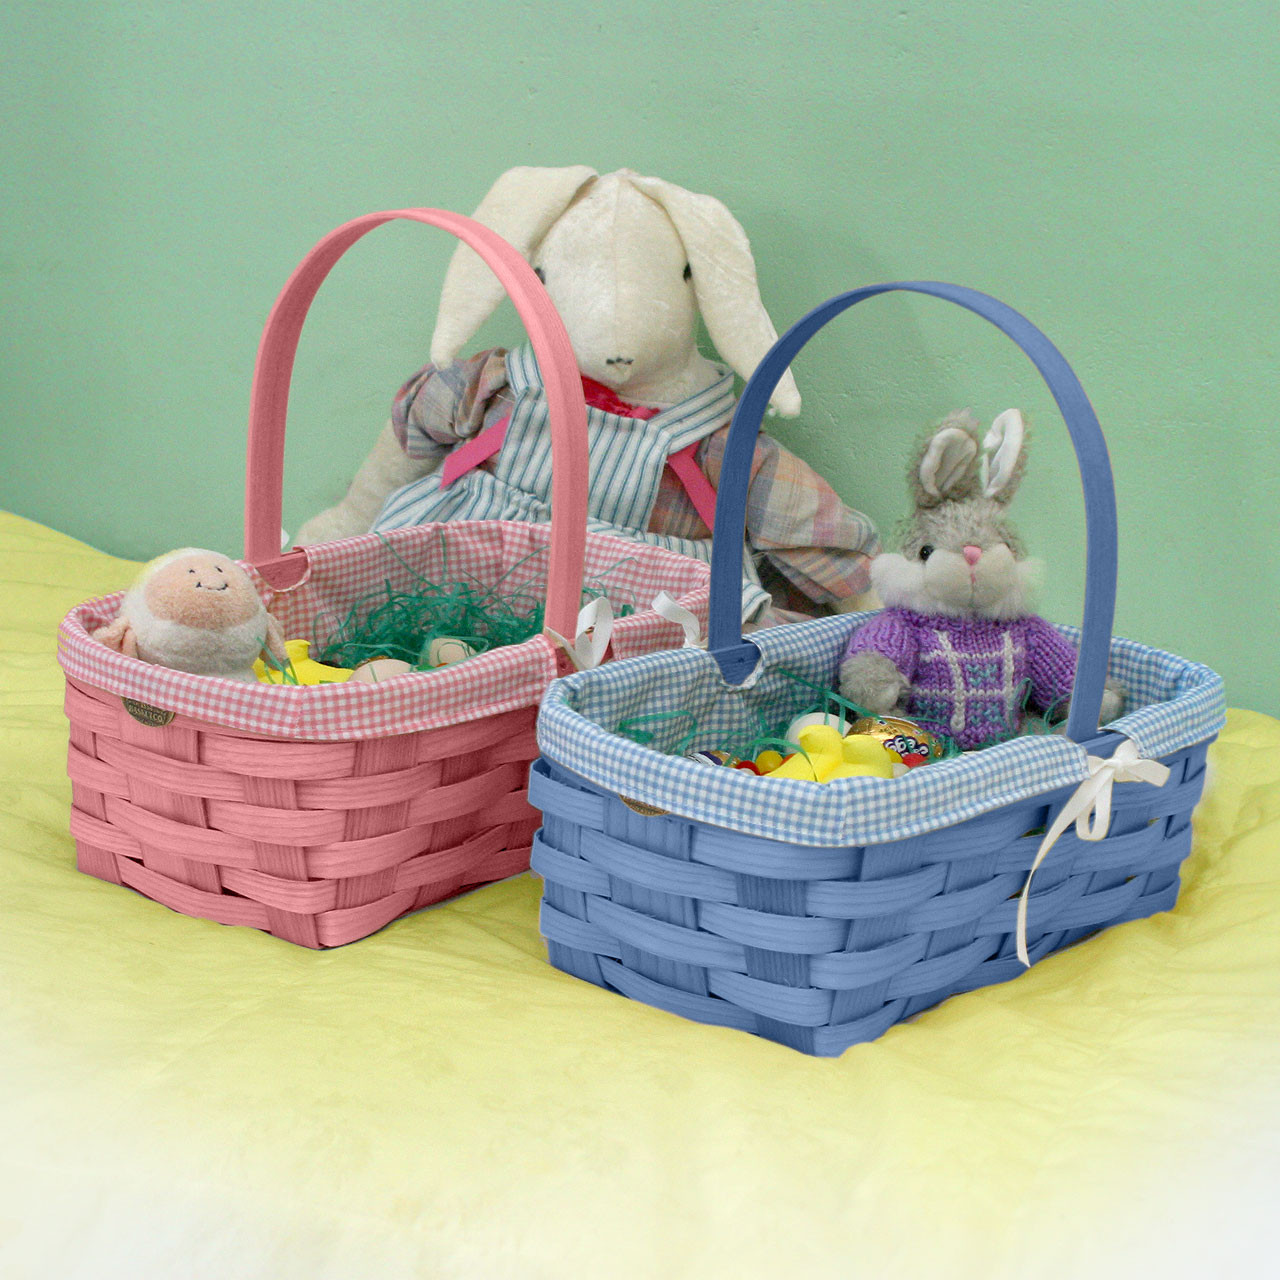 Peterboro quality easter and newborn gift basket w liner peterboro quality easter and newborn gift basket with liner negle Image collections